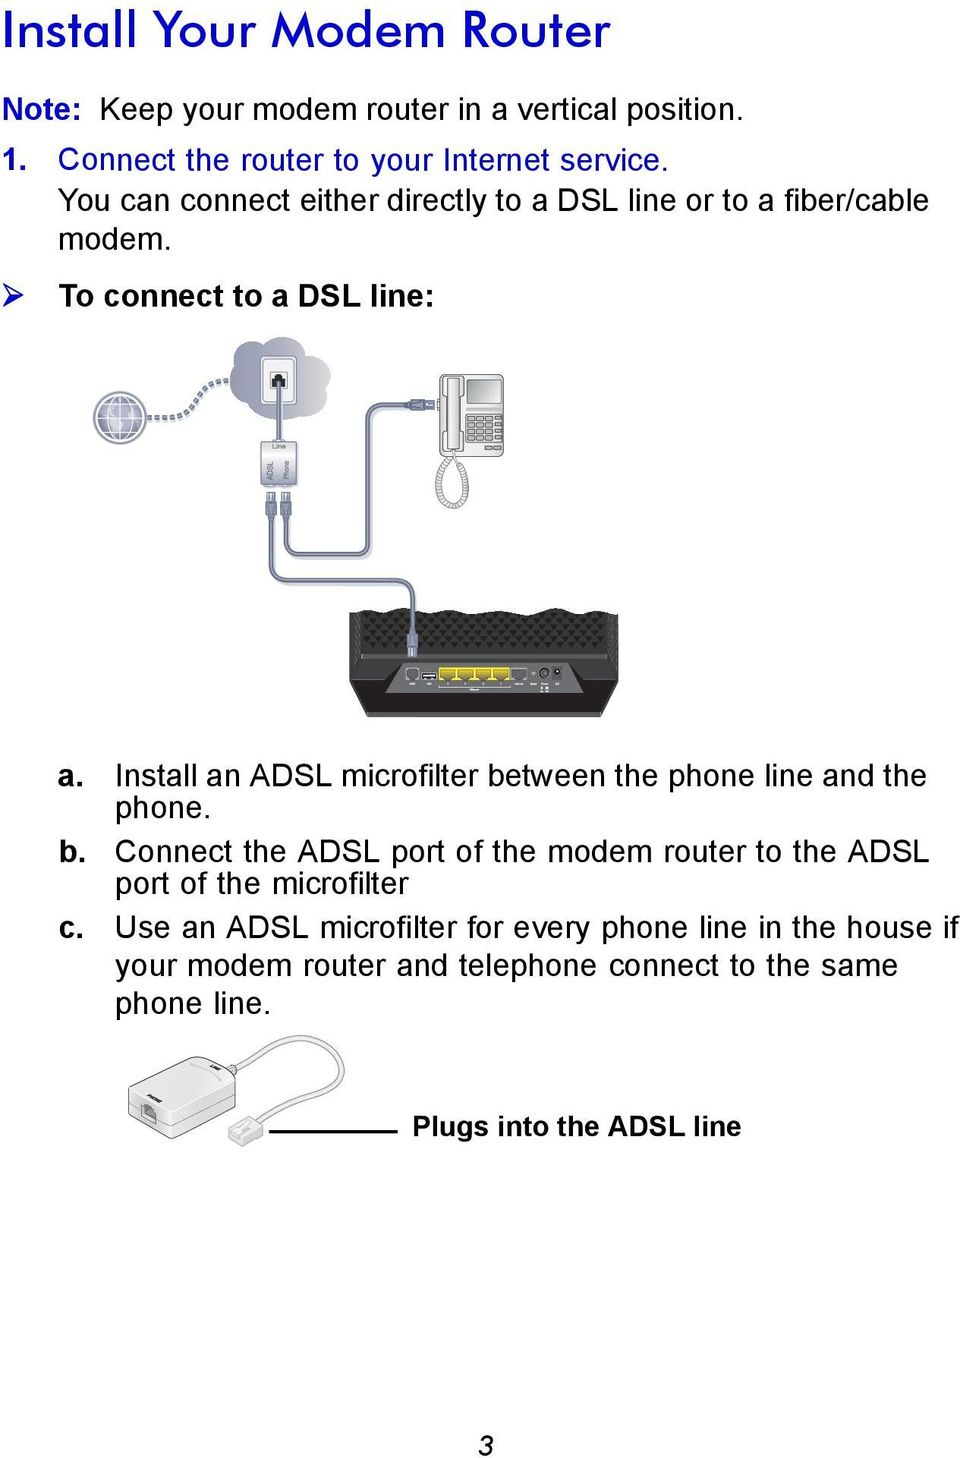 Install an ADSL microfilter between the phone line and the phone. b. Connect the ADSL port of the modem router to the ADSL port of the microfilter c.